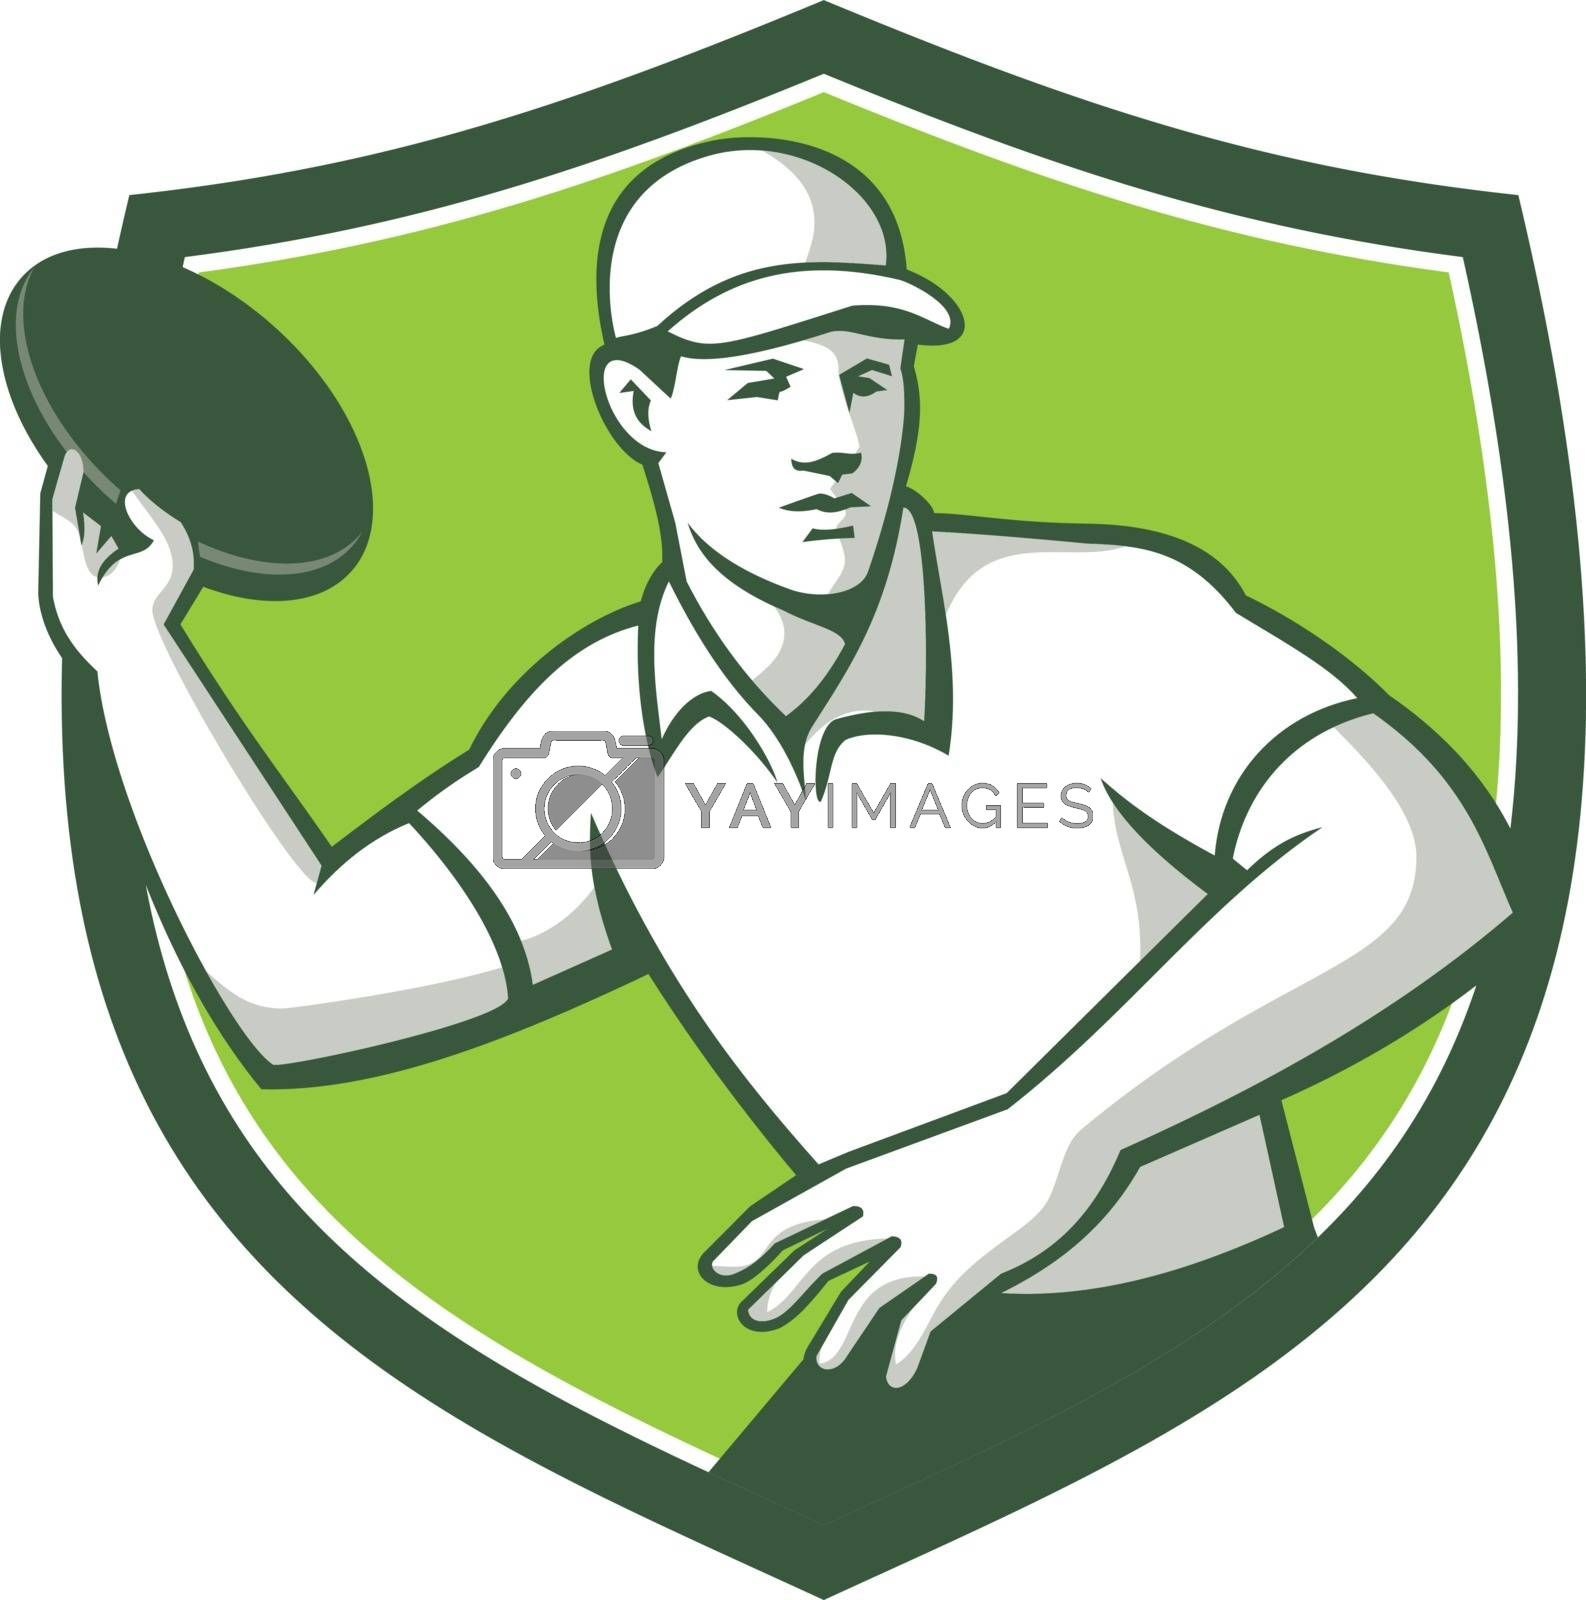 Mascot icon illustration  of an disc golf player throwing a flatball or frisbee set inside crest or shield shape viewed from front on isolated background in retro style.